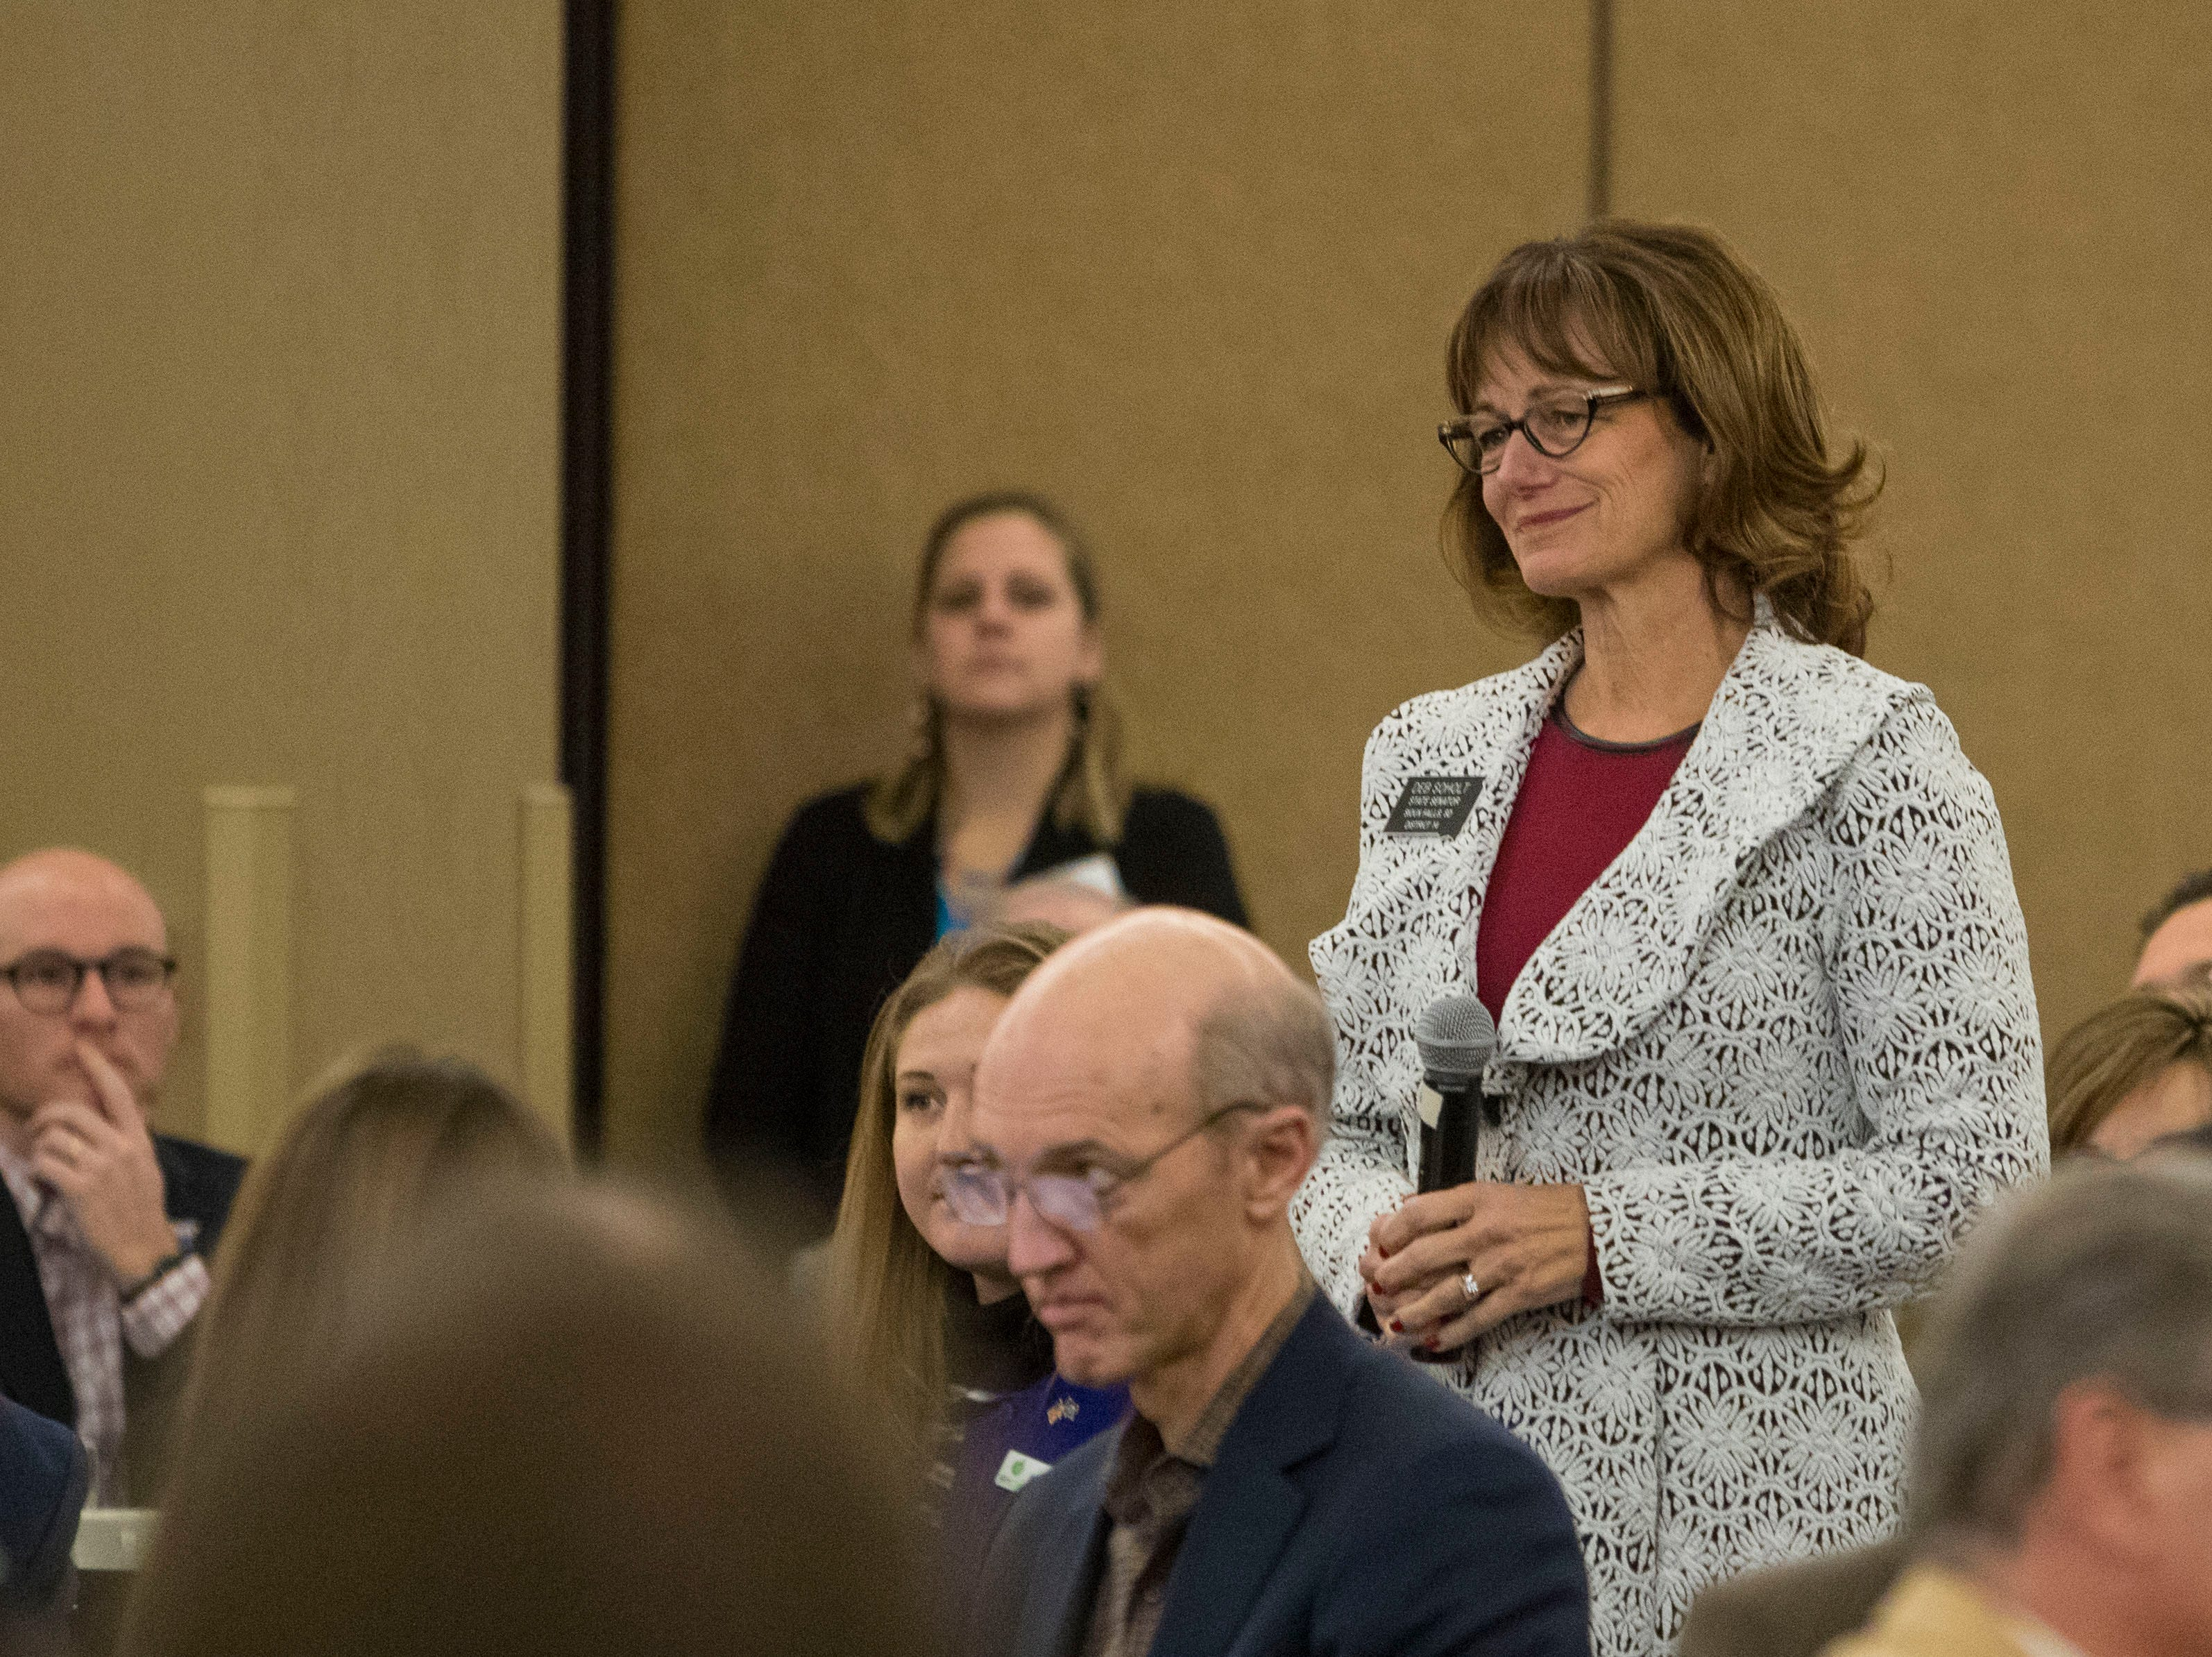 Senator Deb Soholt, District 14, speaks at the Chamber of Commerce legislative breakfast, Thursday, Jan. 3, 2019 at the Best Western Plus Ramkota Hotel in Sioux Falls, S.D.